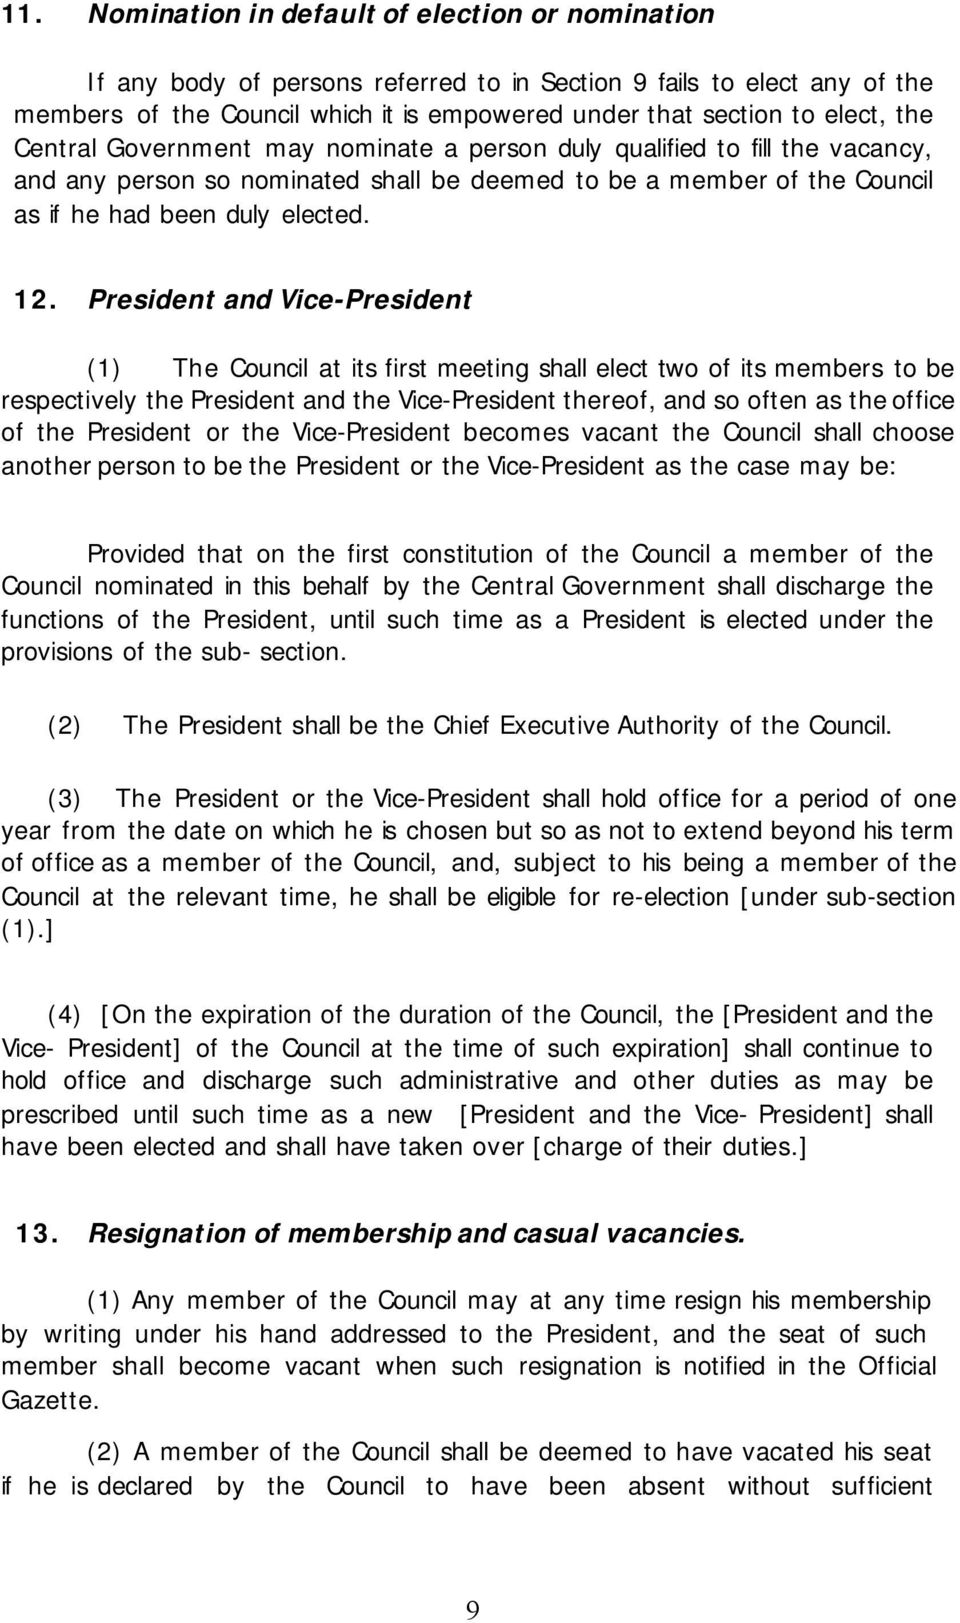 President and Vice-President (1) The Council at its first meeting shall elect two of its members to be respectively the President and the Vice-President thereof, and so often as the office of the